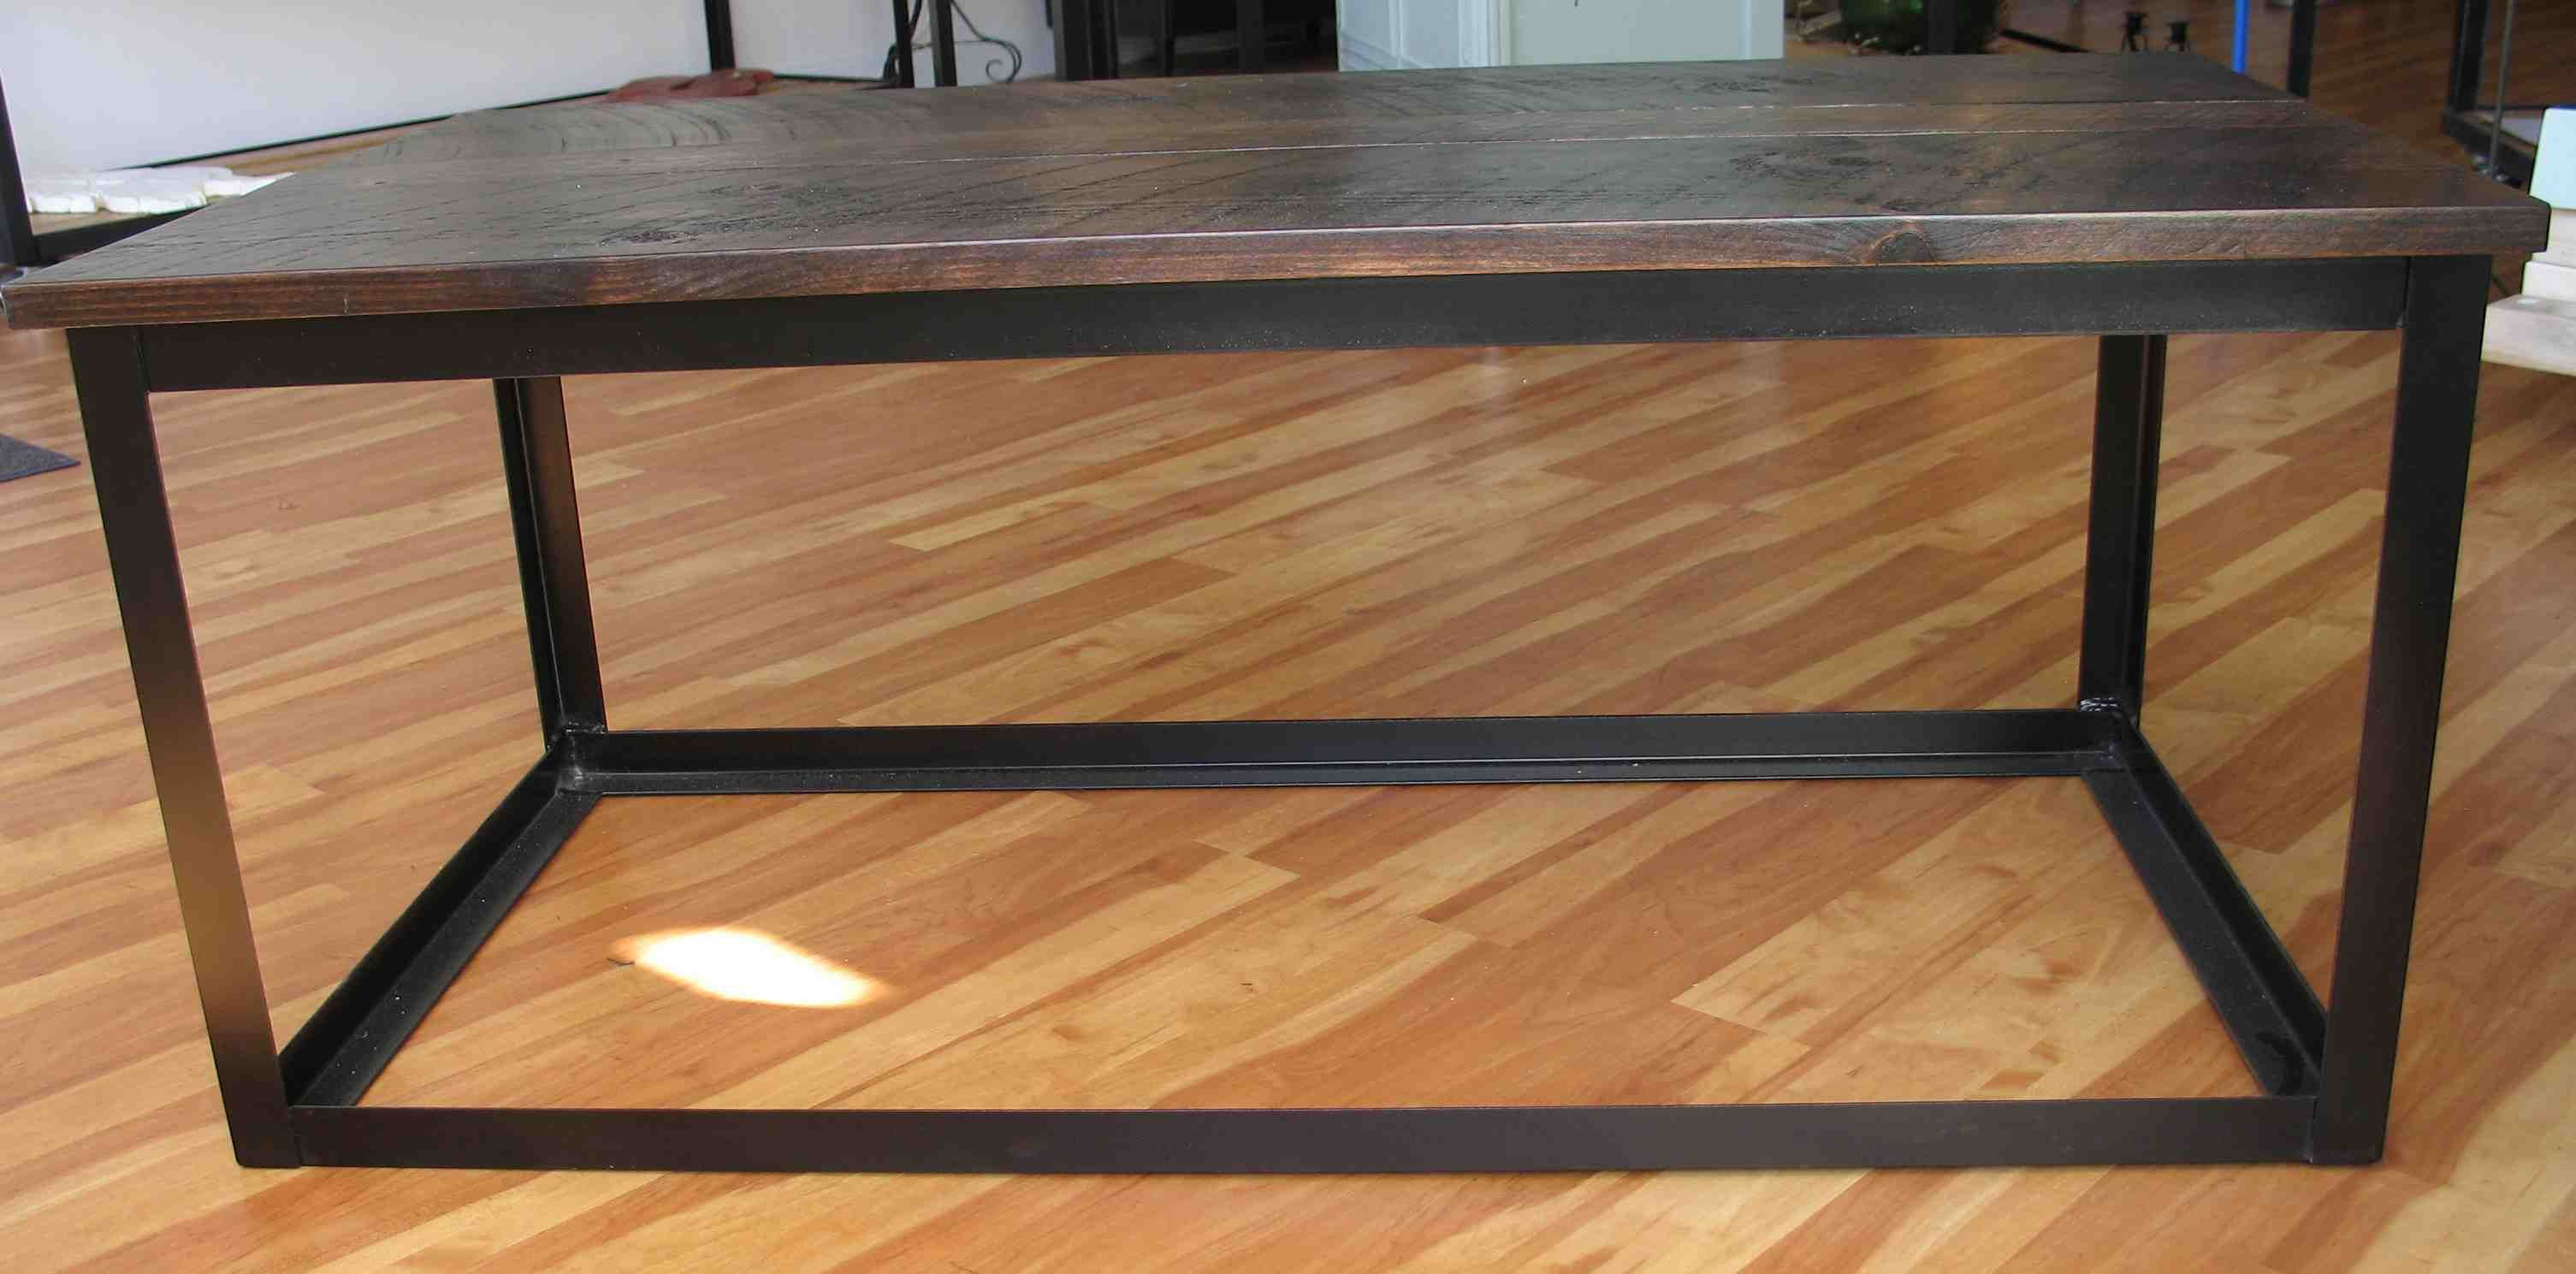 fy Diy Industrial Coffee Table And Table Set Design Ideas